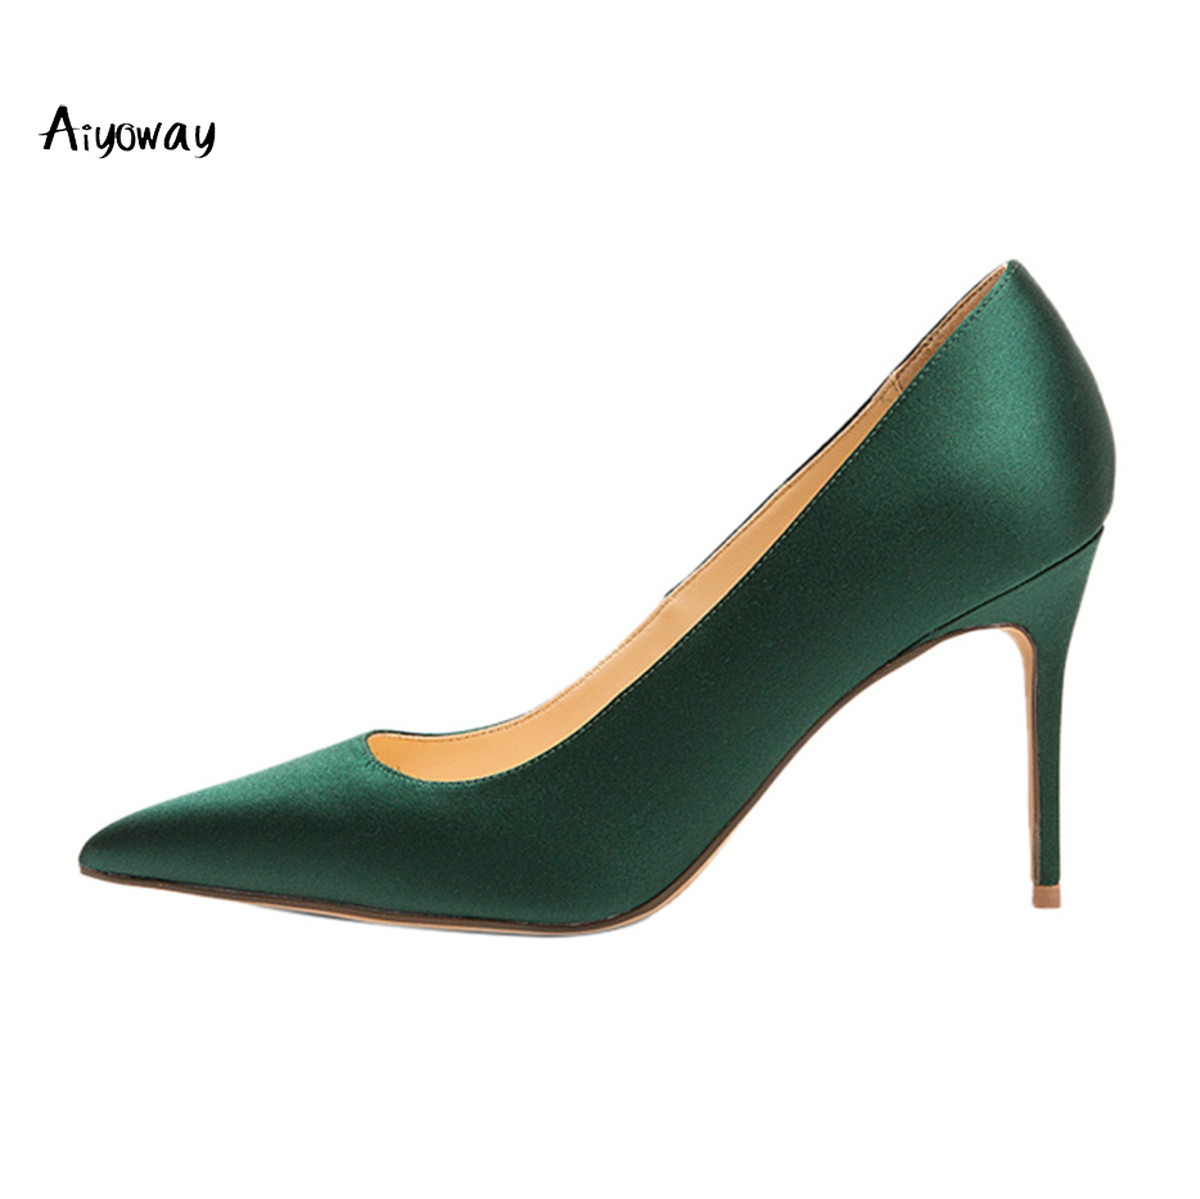 Aiyoway Women Shoes Pointed Toe High Heels Pumps 2019 Spring Autumn Ladies Party Wedding Shoes Slip On Red White Green Satin